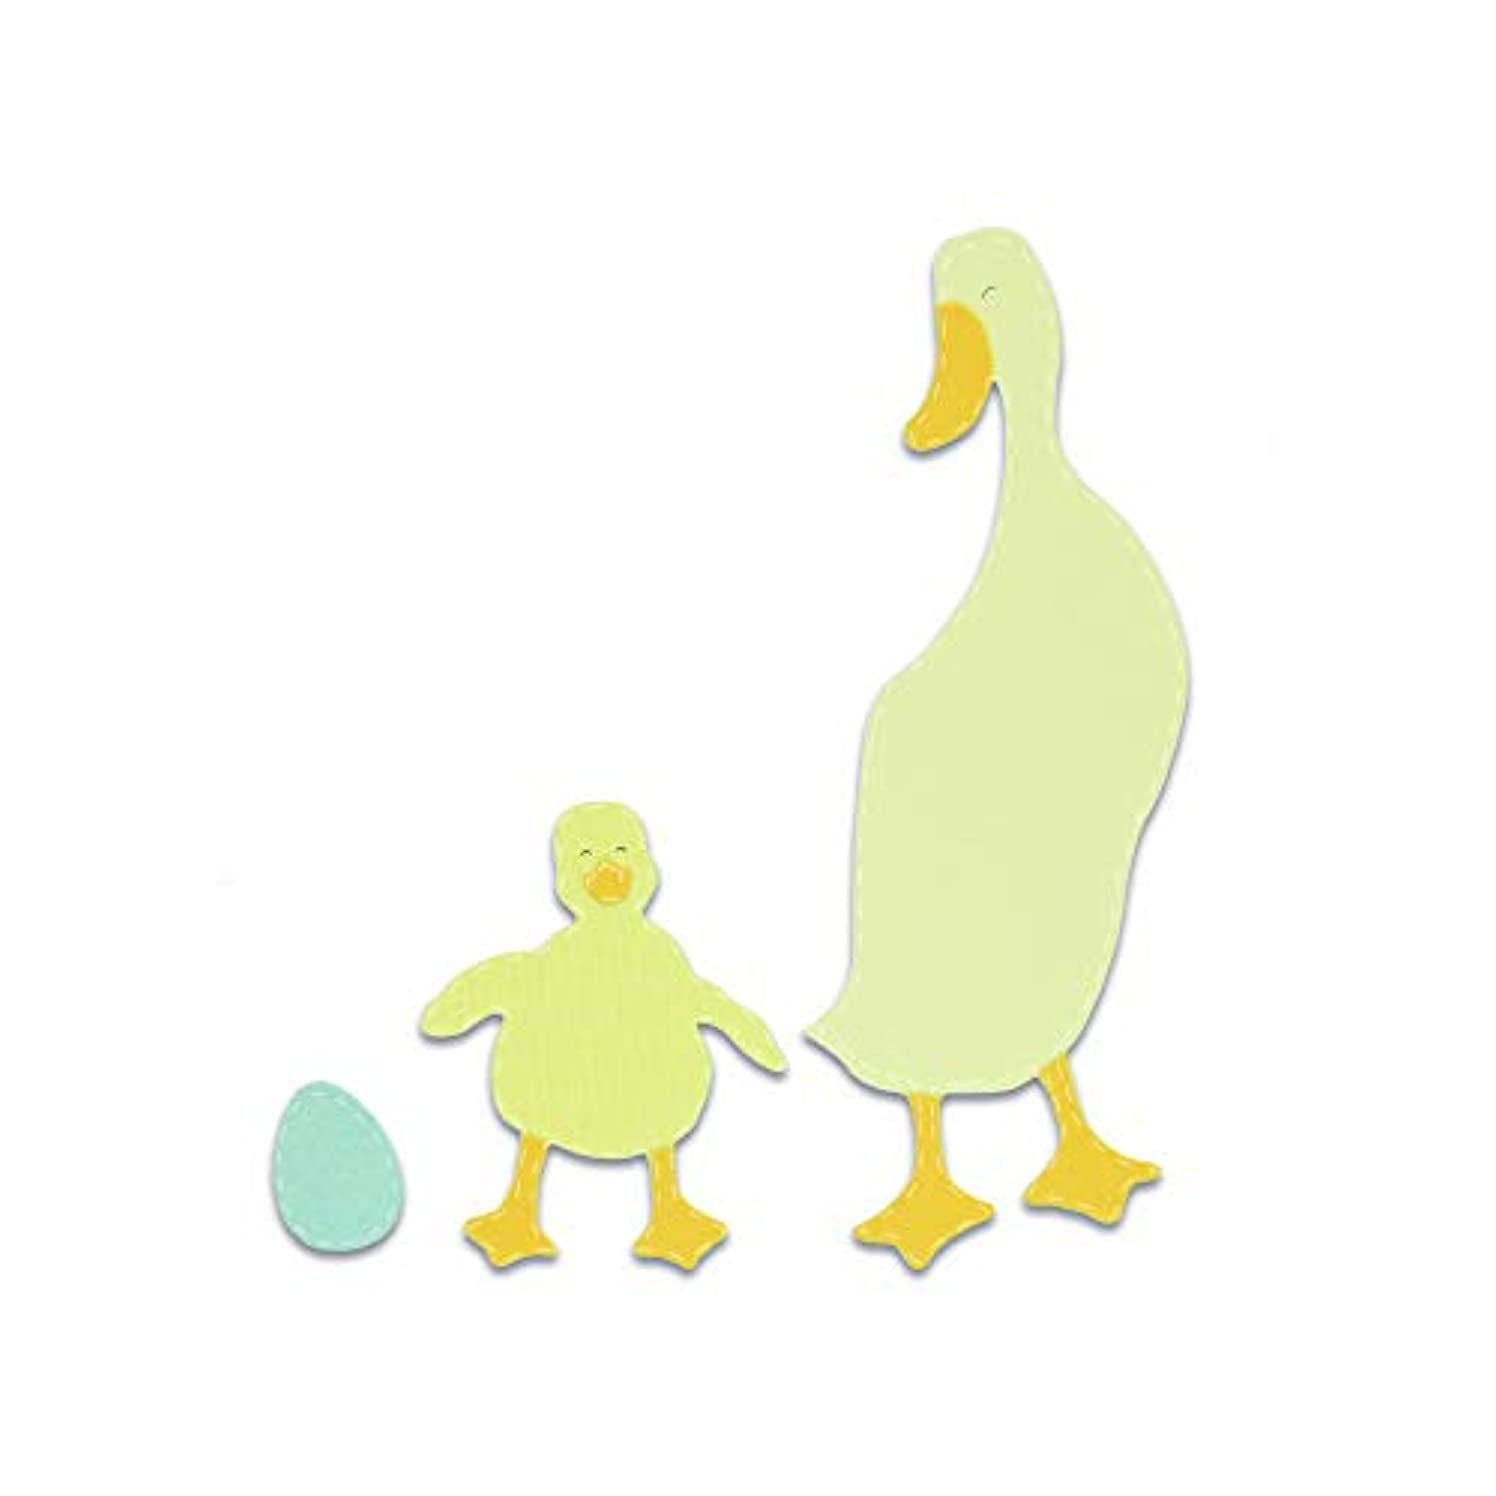 Sizzix 663306 Duck and Duckling Dies, One Size, Multicolor